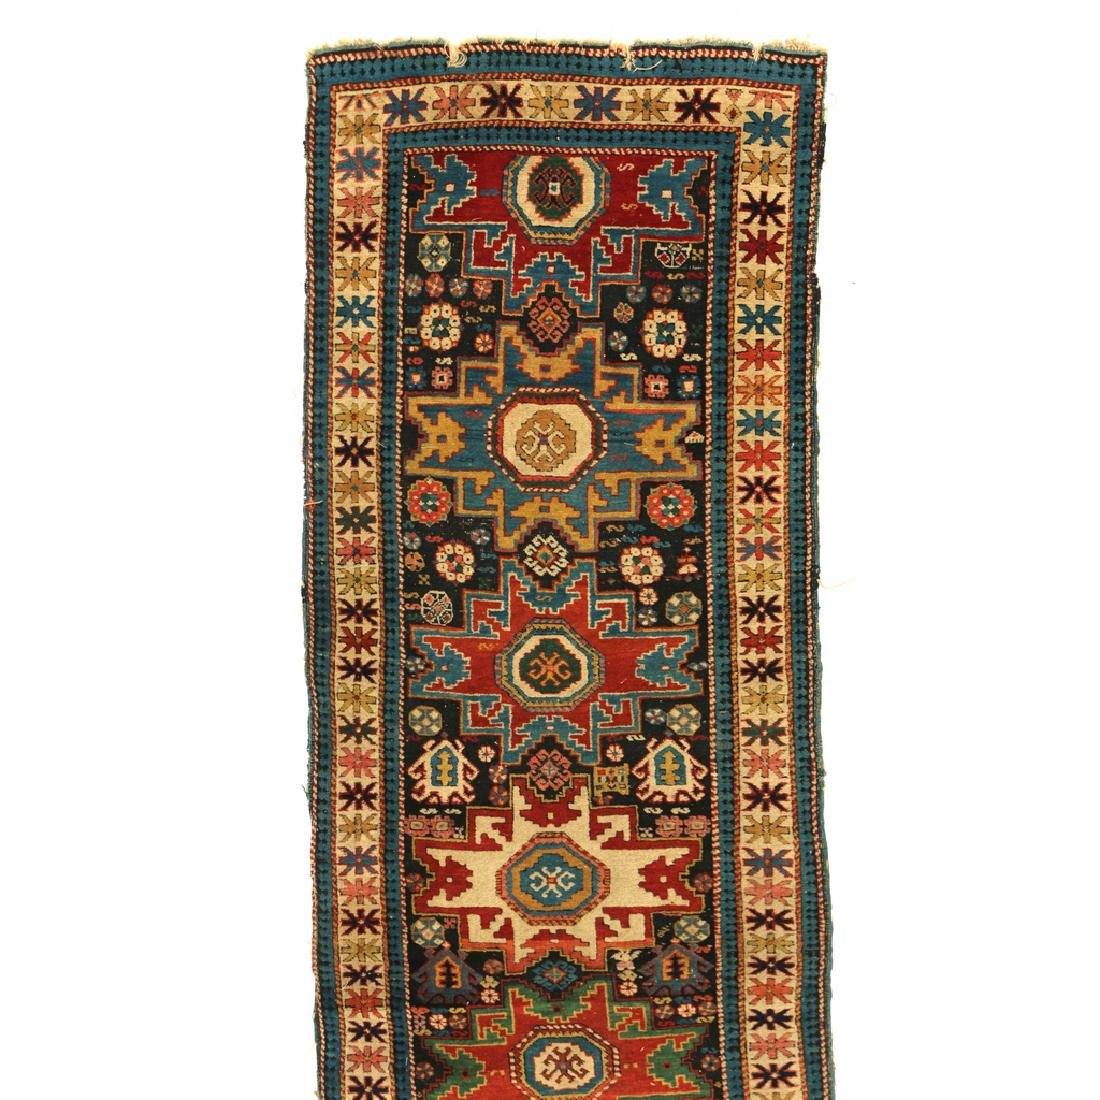 LESGHI-STAR LONG RUG